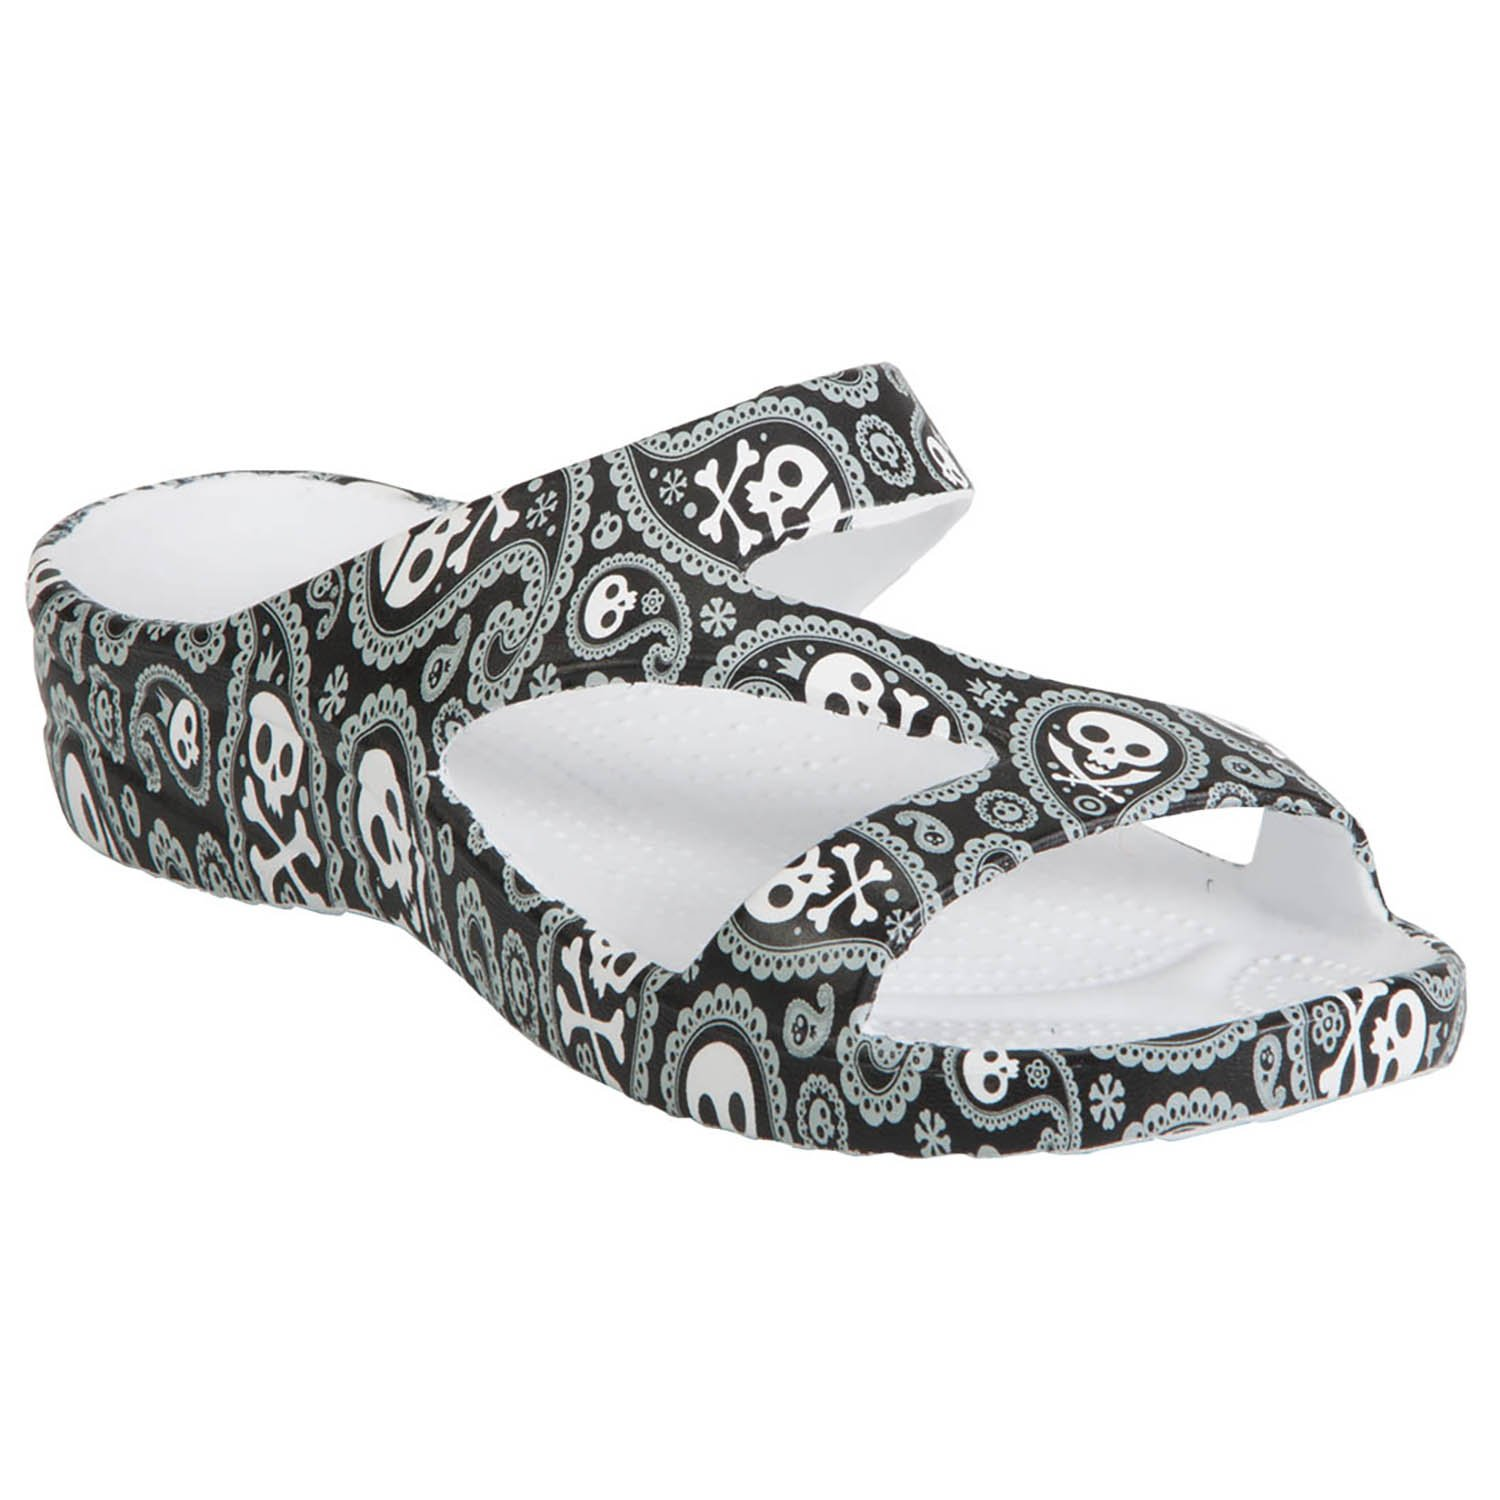 DAWGS Women's Arch Support Loudmouth Z, Shiver Me Timbers, 7